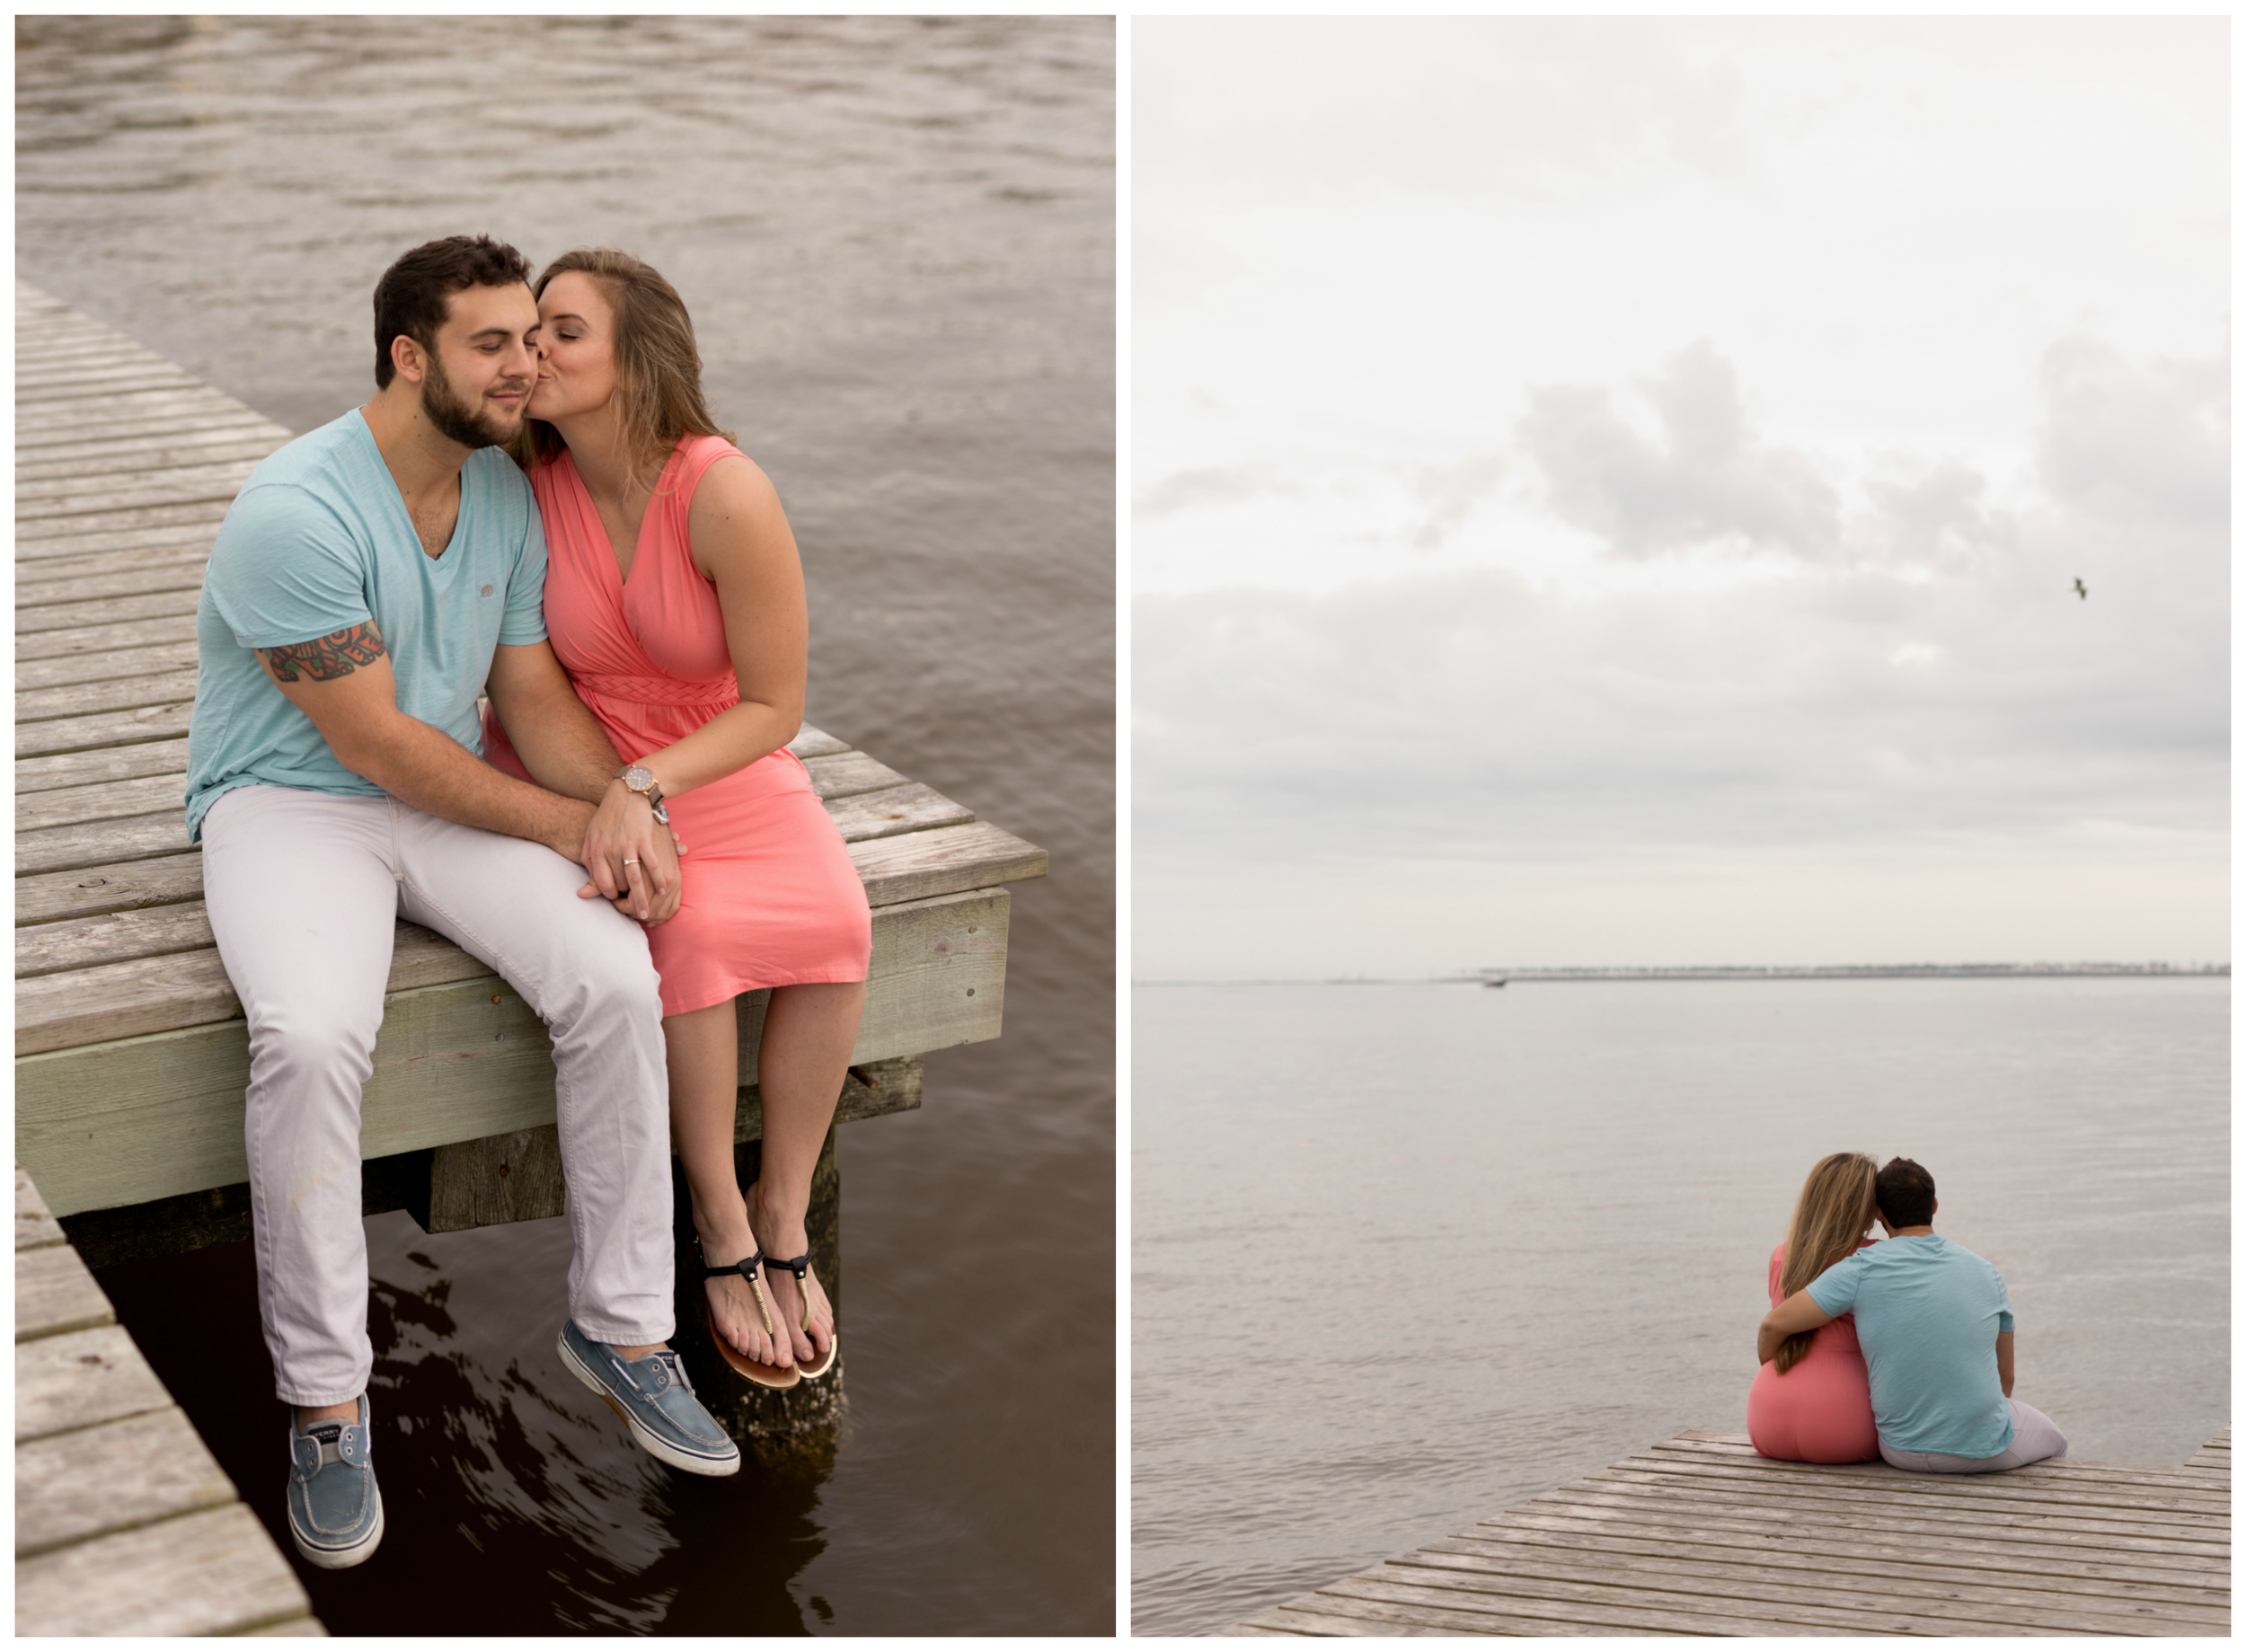 romantic engagement photos at dock on cloudy day